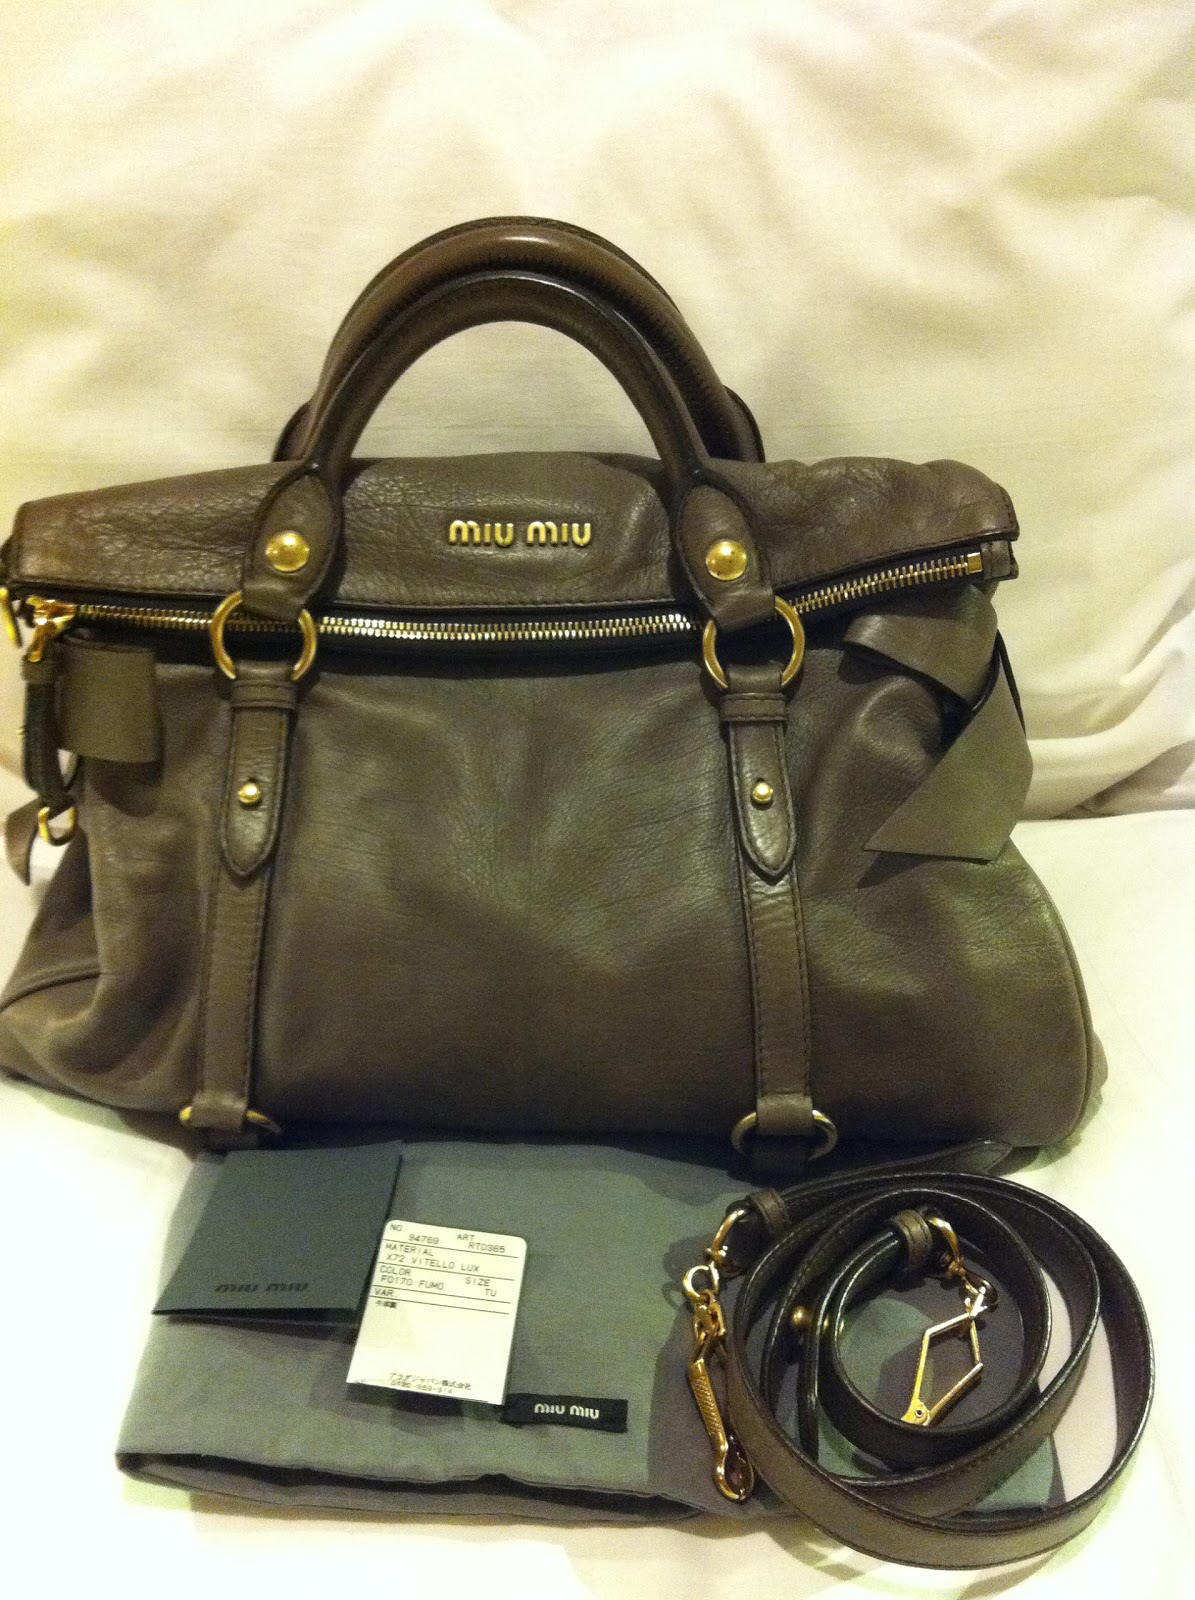 10aa8a6caf8e Baghaven-Bookoff  SOLD Authentic Miu Miu Vitello Lux Bow Satchel Bag